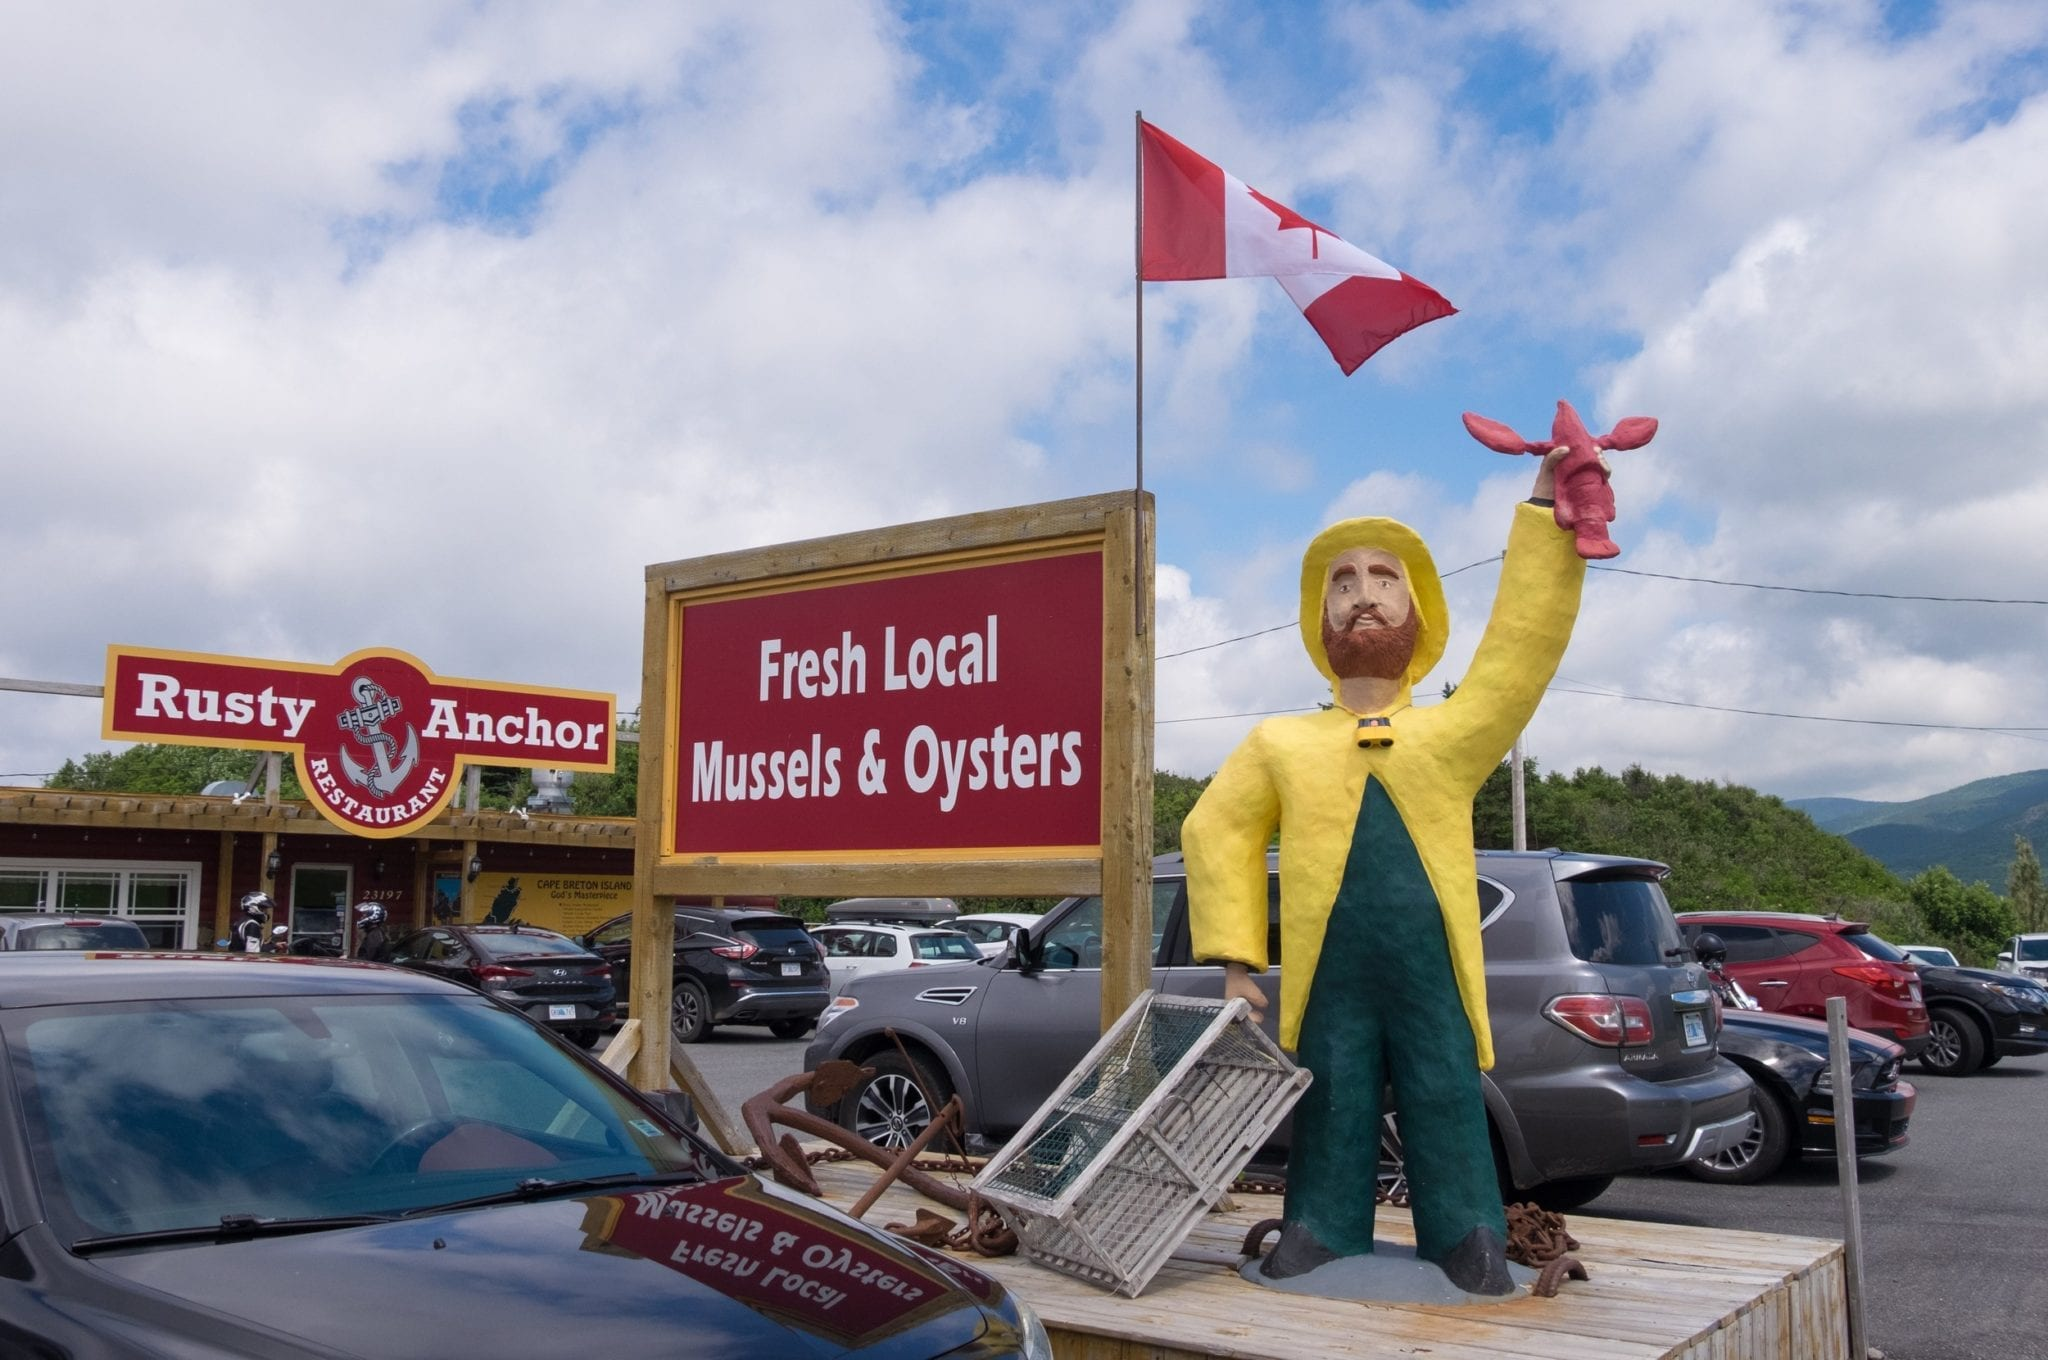 A wooden fisherman holds up lobster outside the Rusty Anchor restaurant in front of a sign that reads Fresh Local Mussels and Oysters.